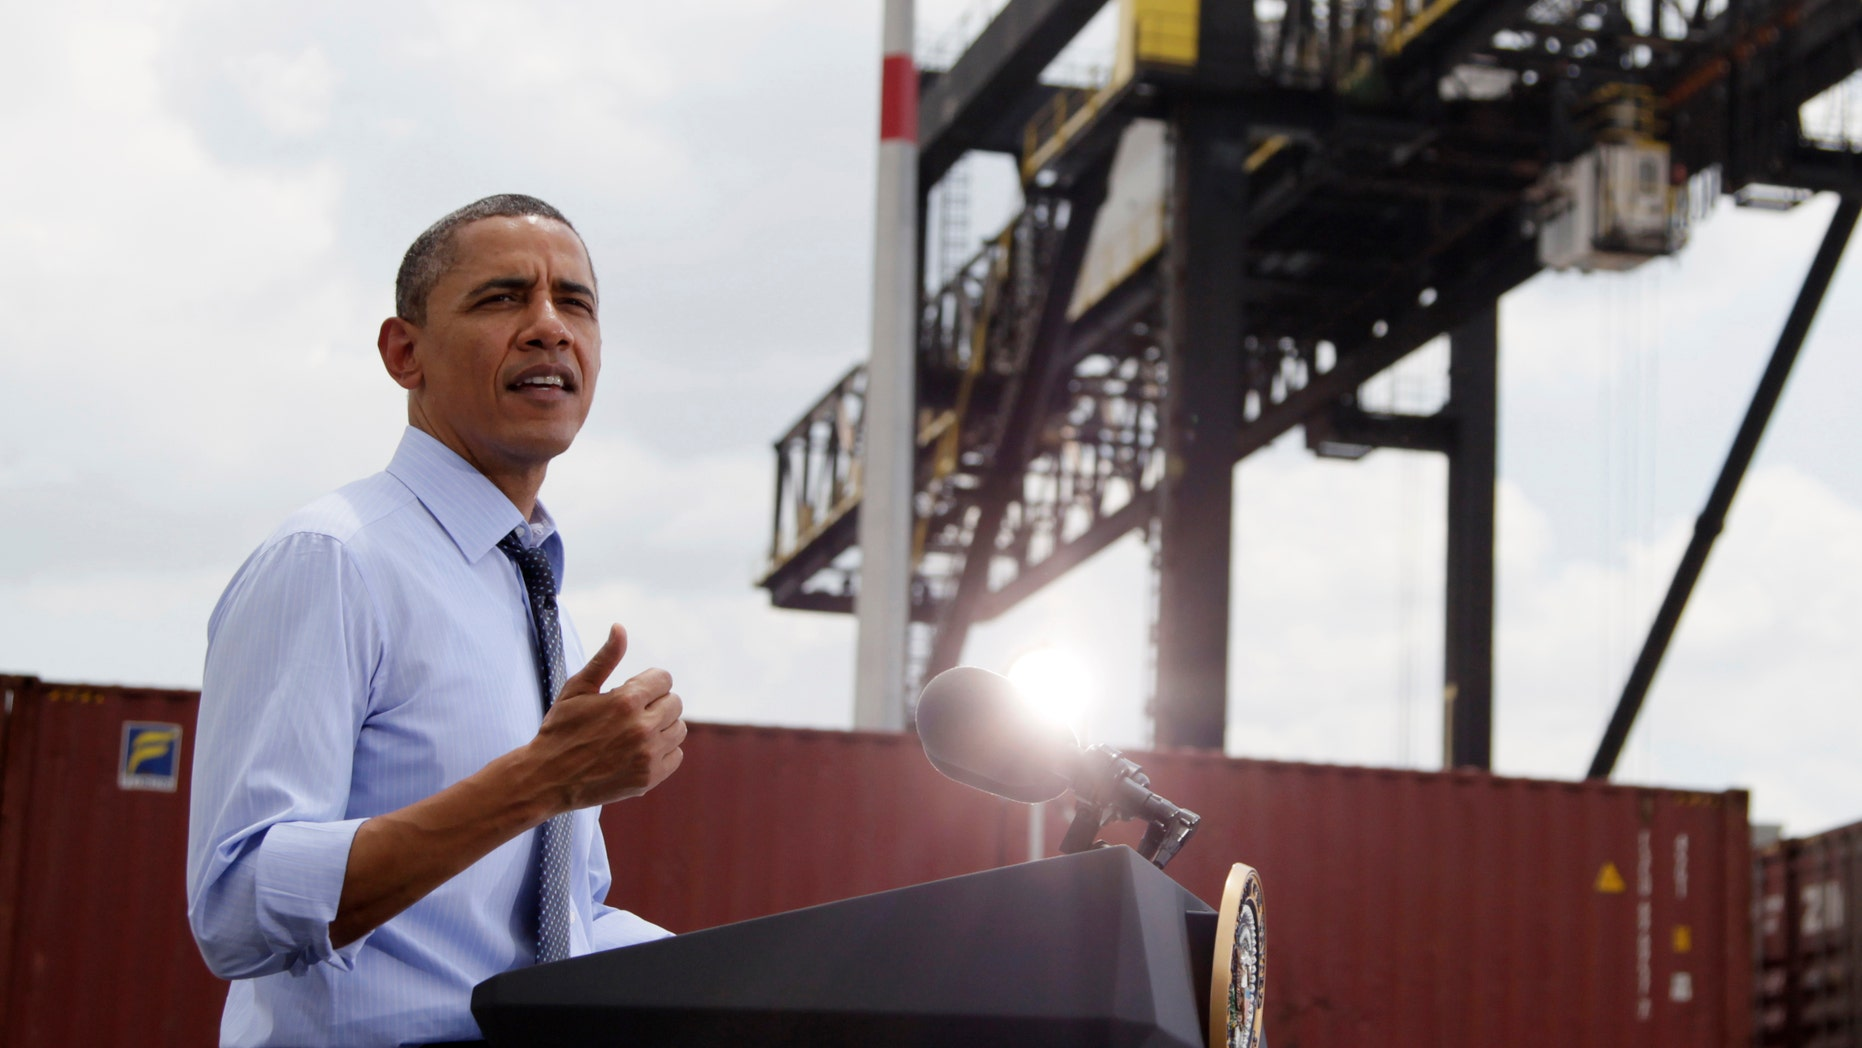 President Barack Obama speaks at the Port of Tampa in Tampa, Fla., ,Friday, April 13, 2012, about trade with Latin America before heading to Colombia for the Summit of the Americas. (AP Photo/Carolyn Kaster)